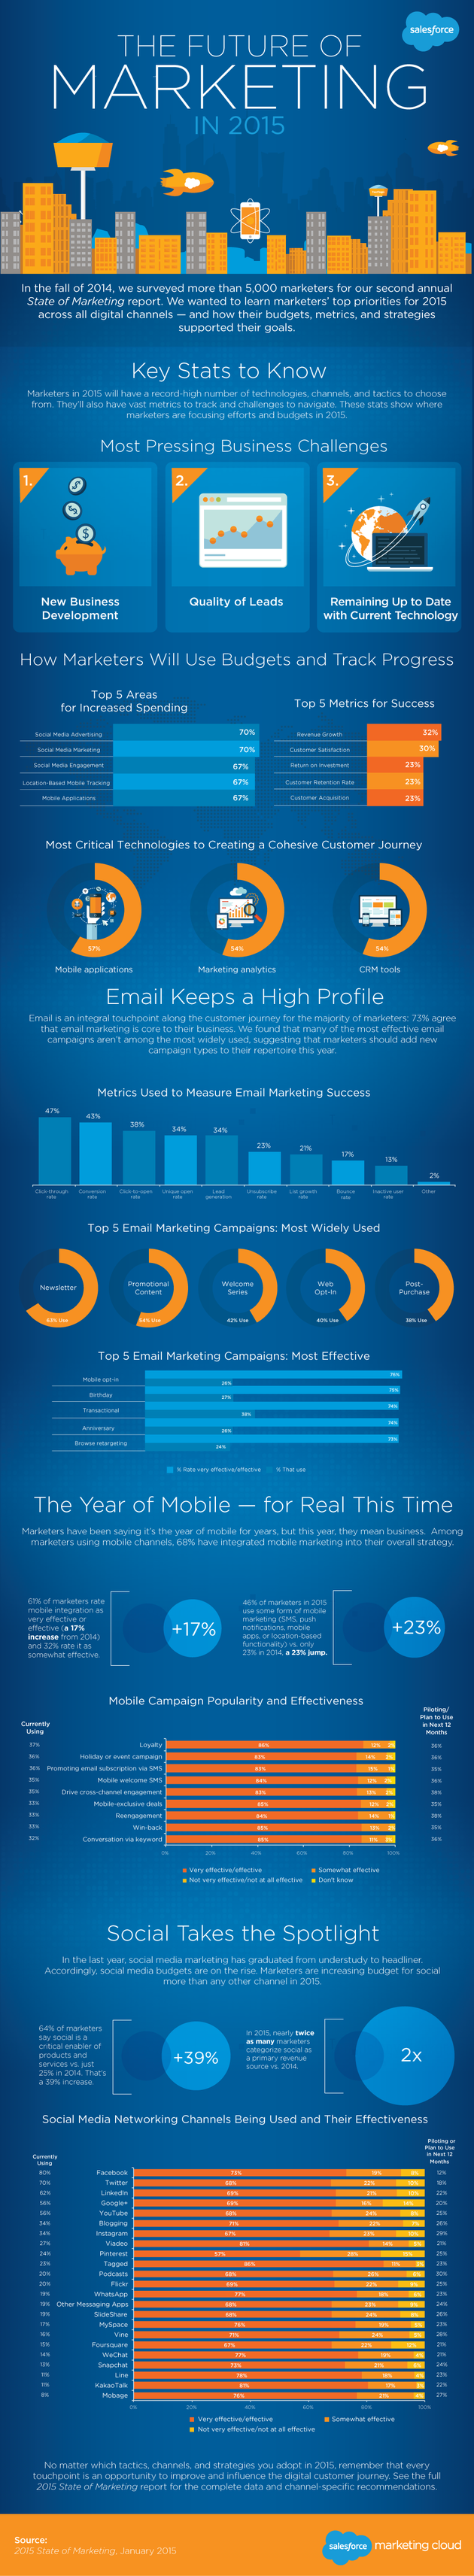 state-of-marketing-infographic